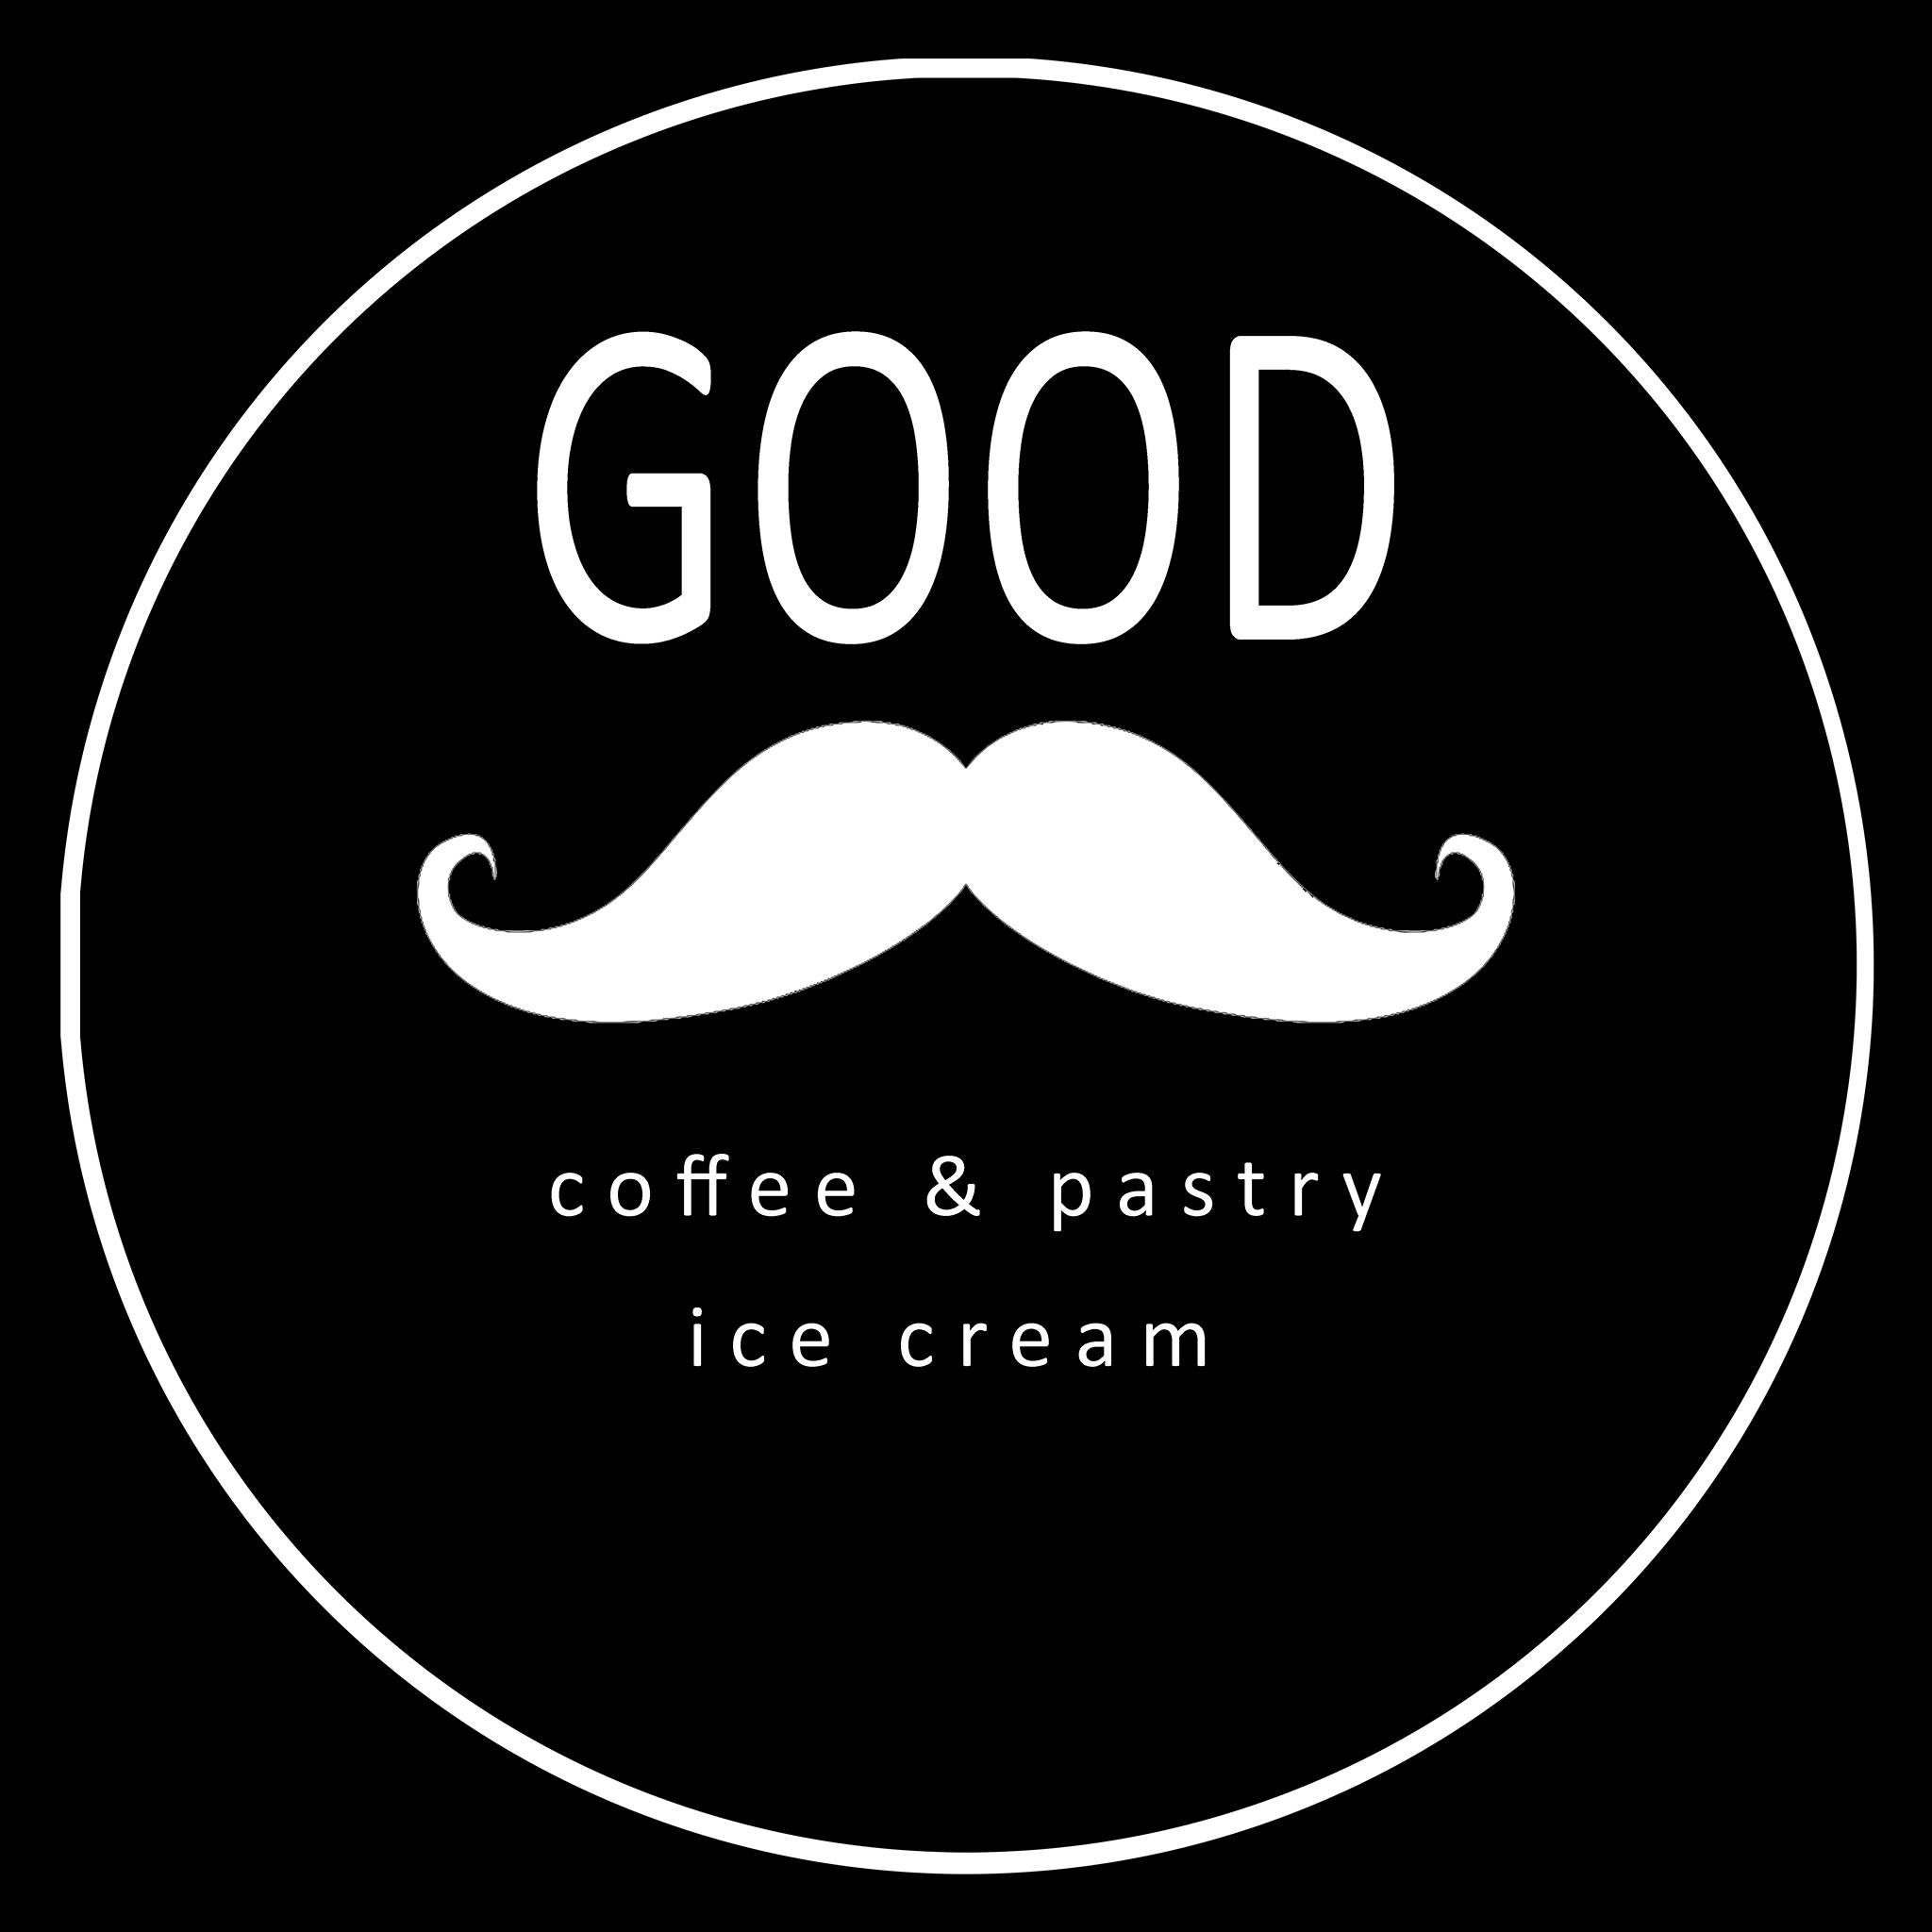 altro, terme vigliatore (me) - good - coffee and pastry